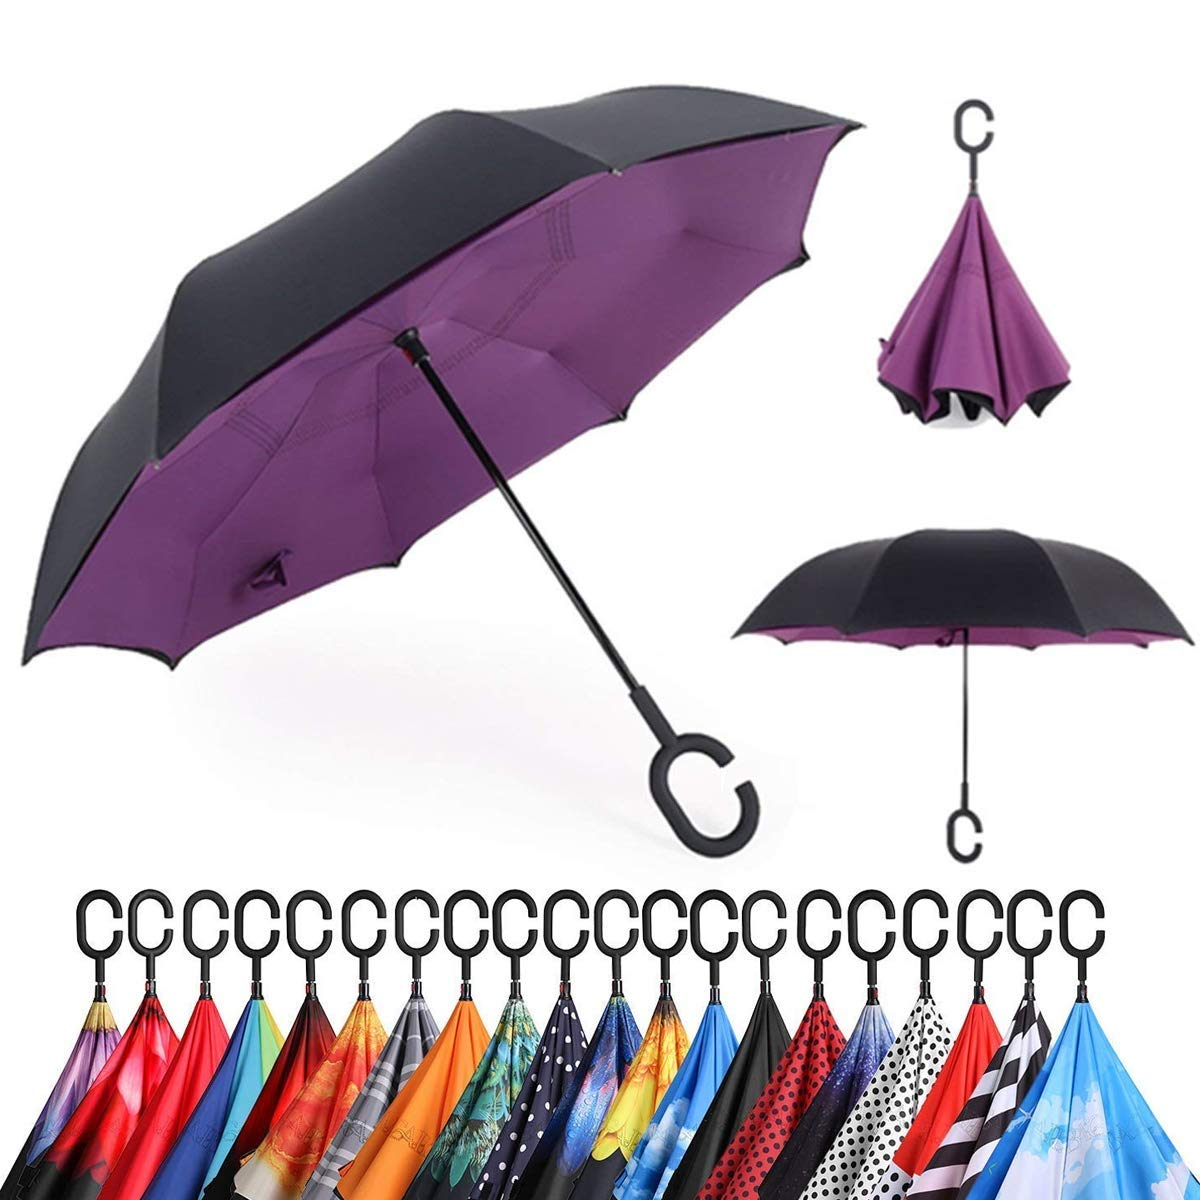 Smart Brella - The World's First Reversible Umbrella (Purple) | Double Layer Inverted Umbrella Cars Reverse Open Folding Umbrellas | C Hook for hanging on points